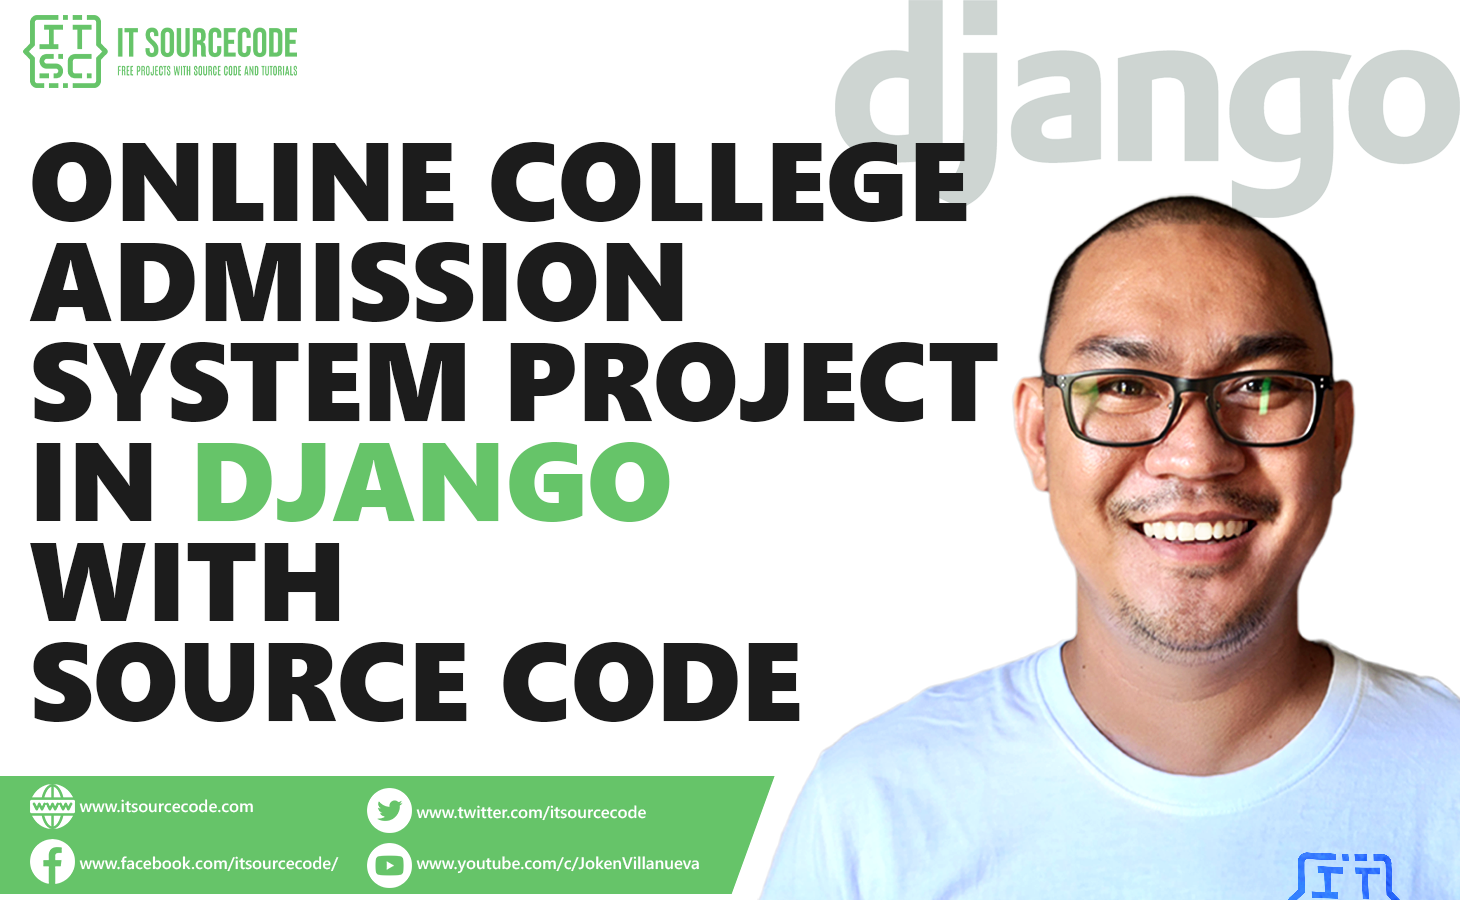 Online College Admission System Project in Django with Source Code